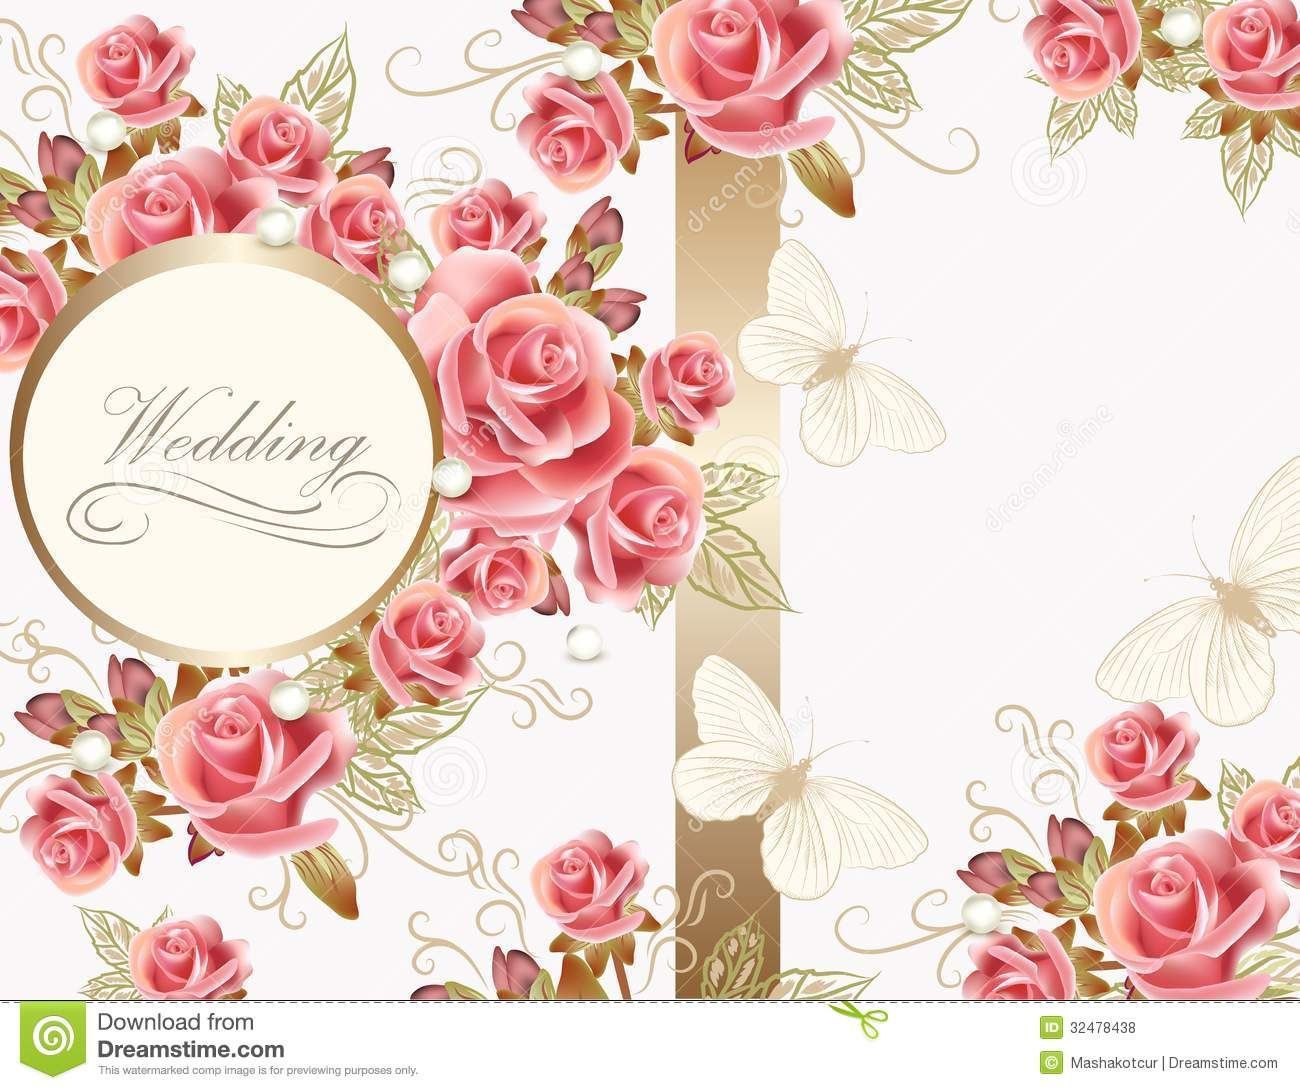 Free Vintage Wedding Congratulation Cards